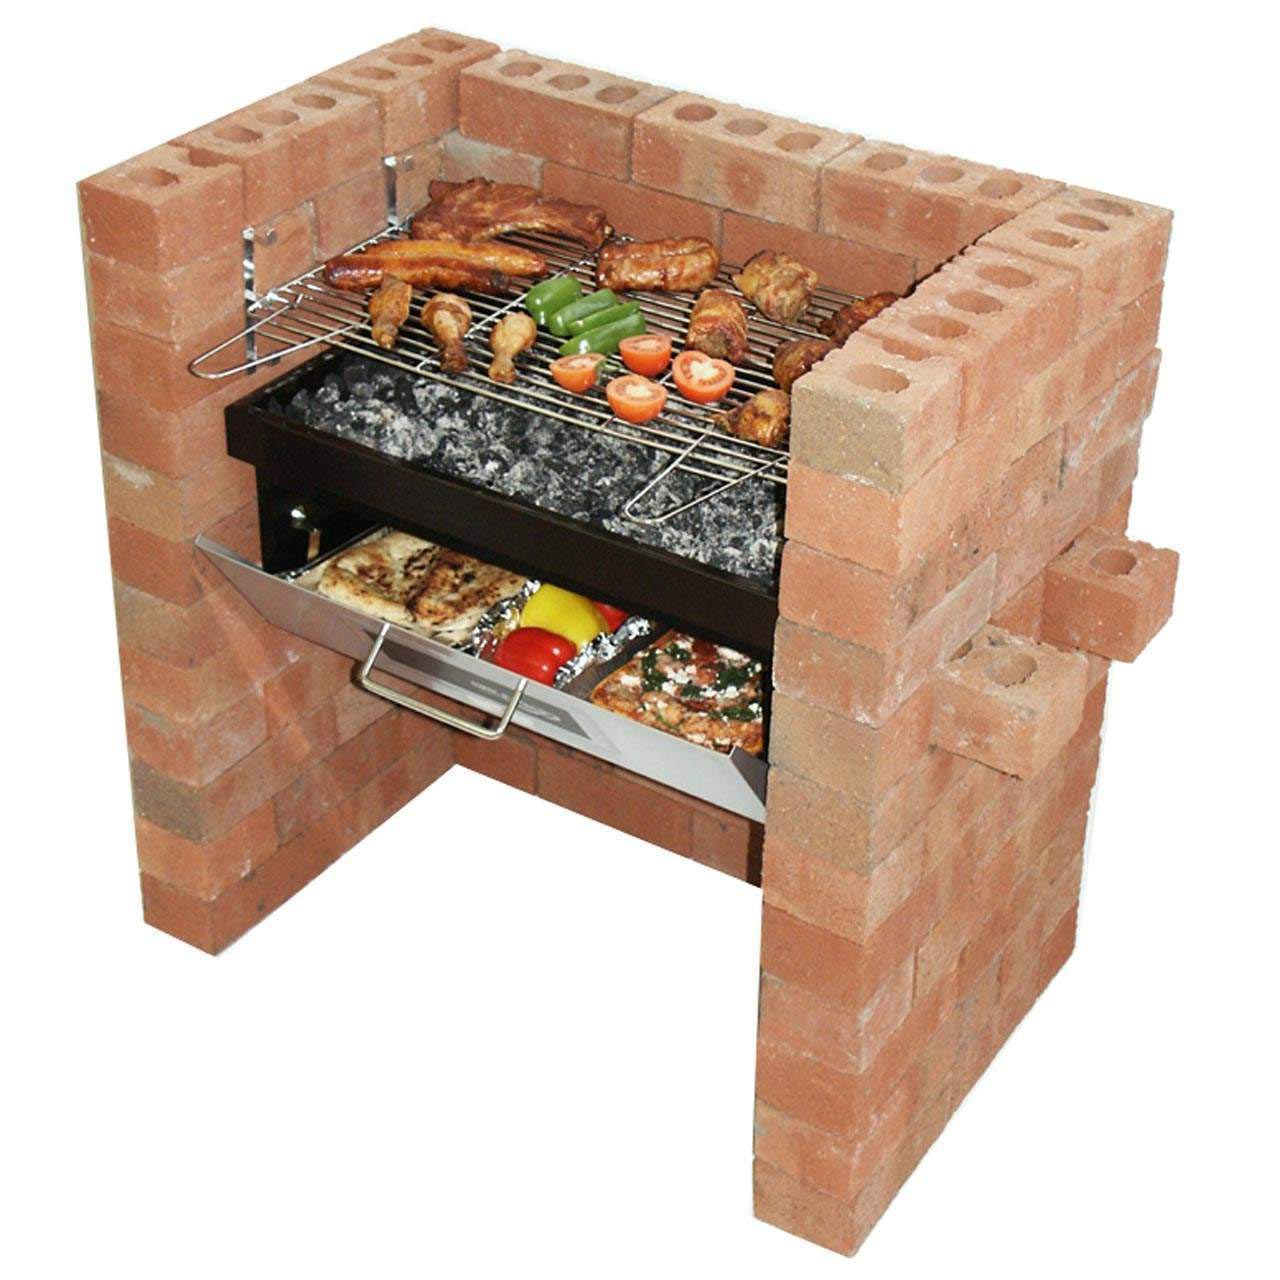 DIY Brick BBQ Grill Kit